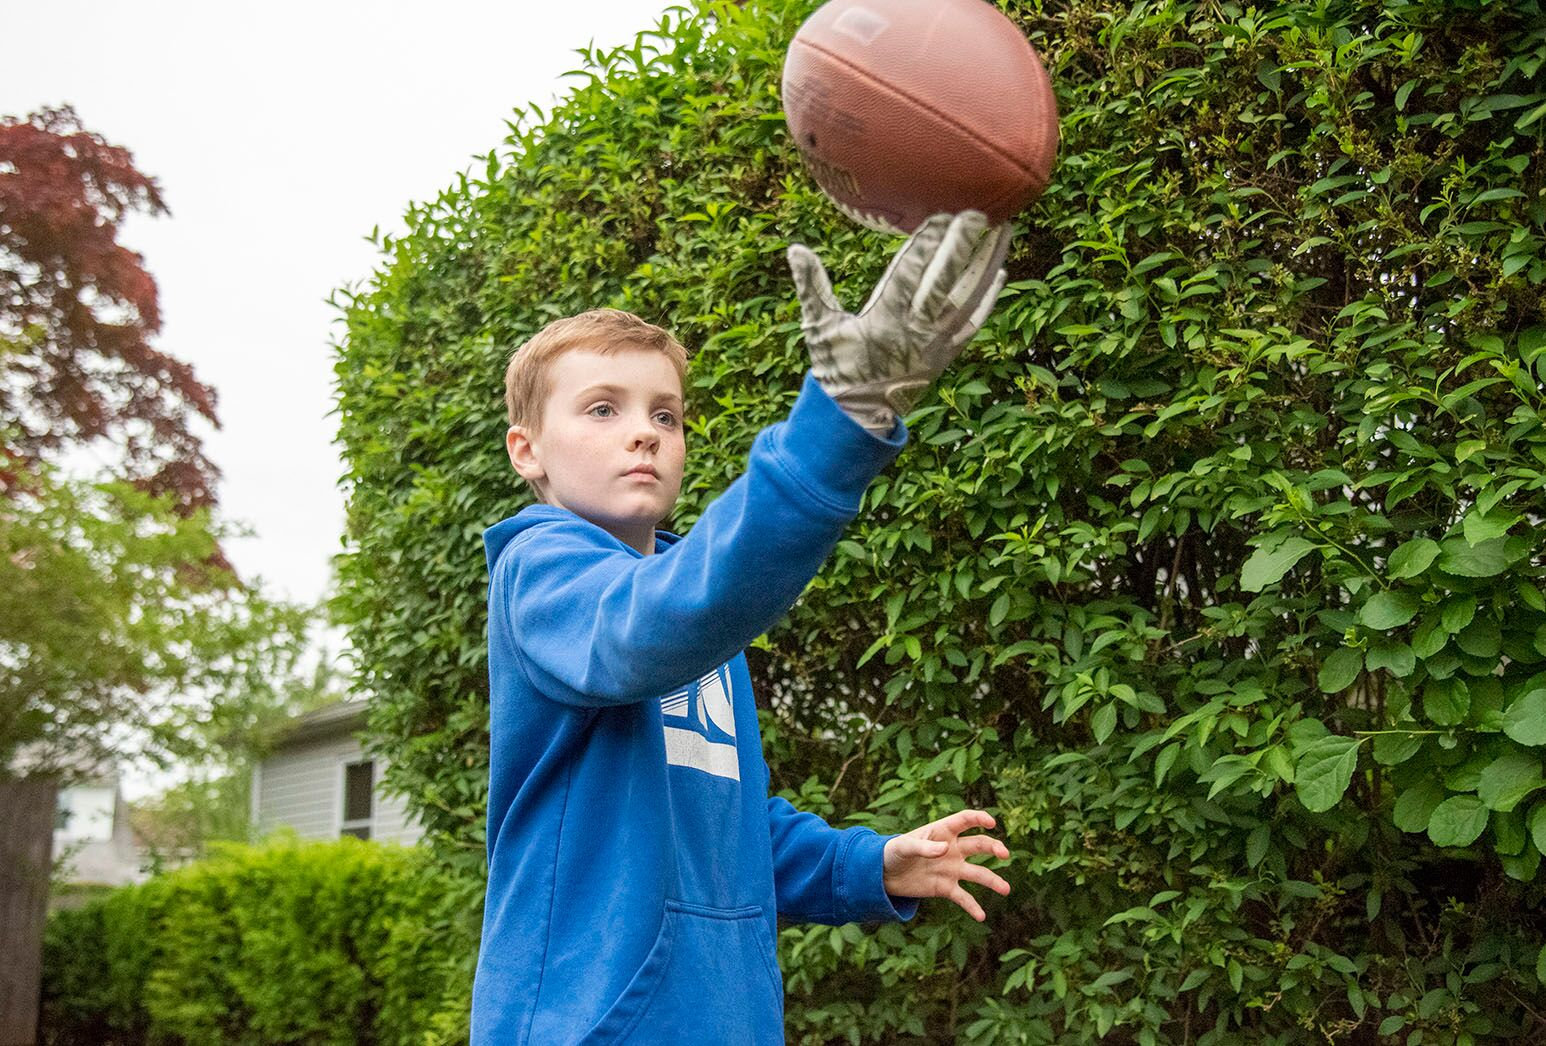 Young boy with dark hair in a blue sweatshirt playing outside with a football.